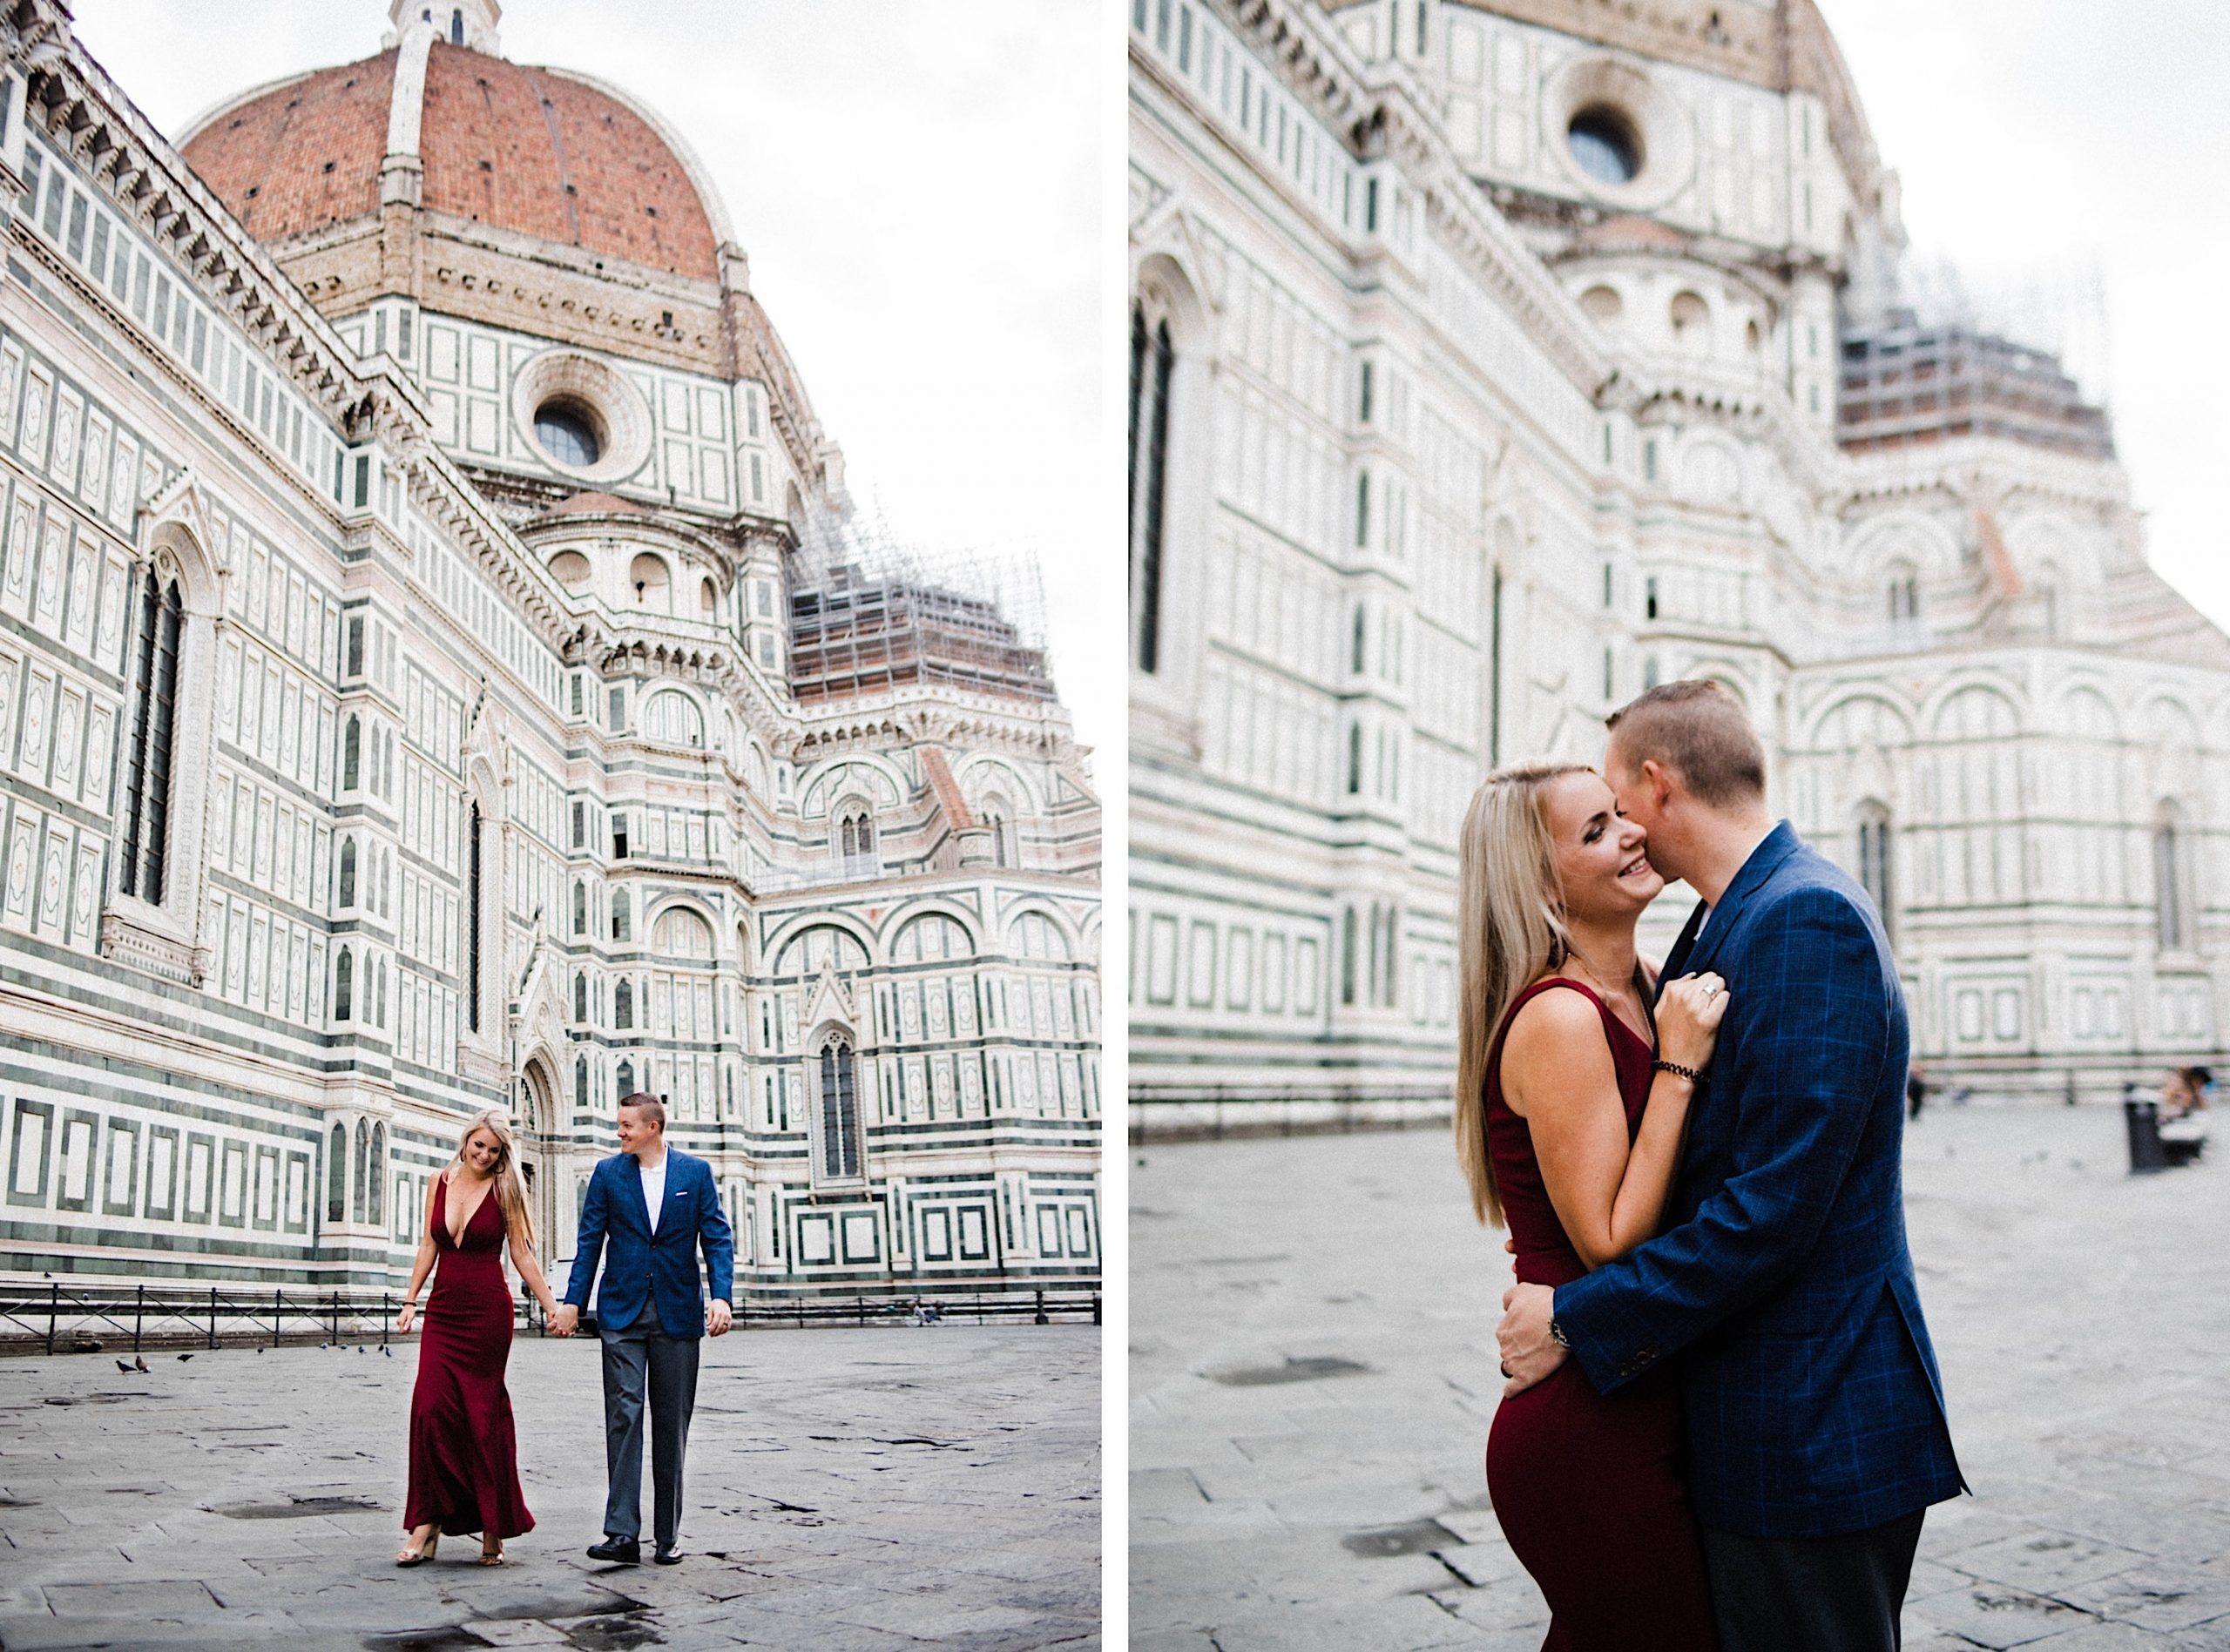 Two photos side by side. Left: wide shote of a couple walking hand-in-hand in front of the Cathedral of Santa Maria Fiore in Florence. Right: a photo in the same spot, but a mid-shot, of the same couple hugging.